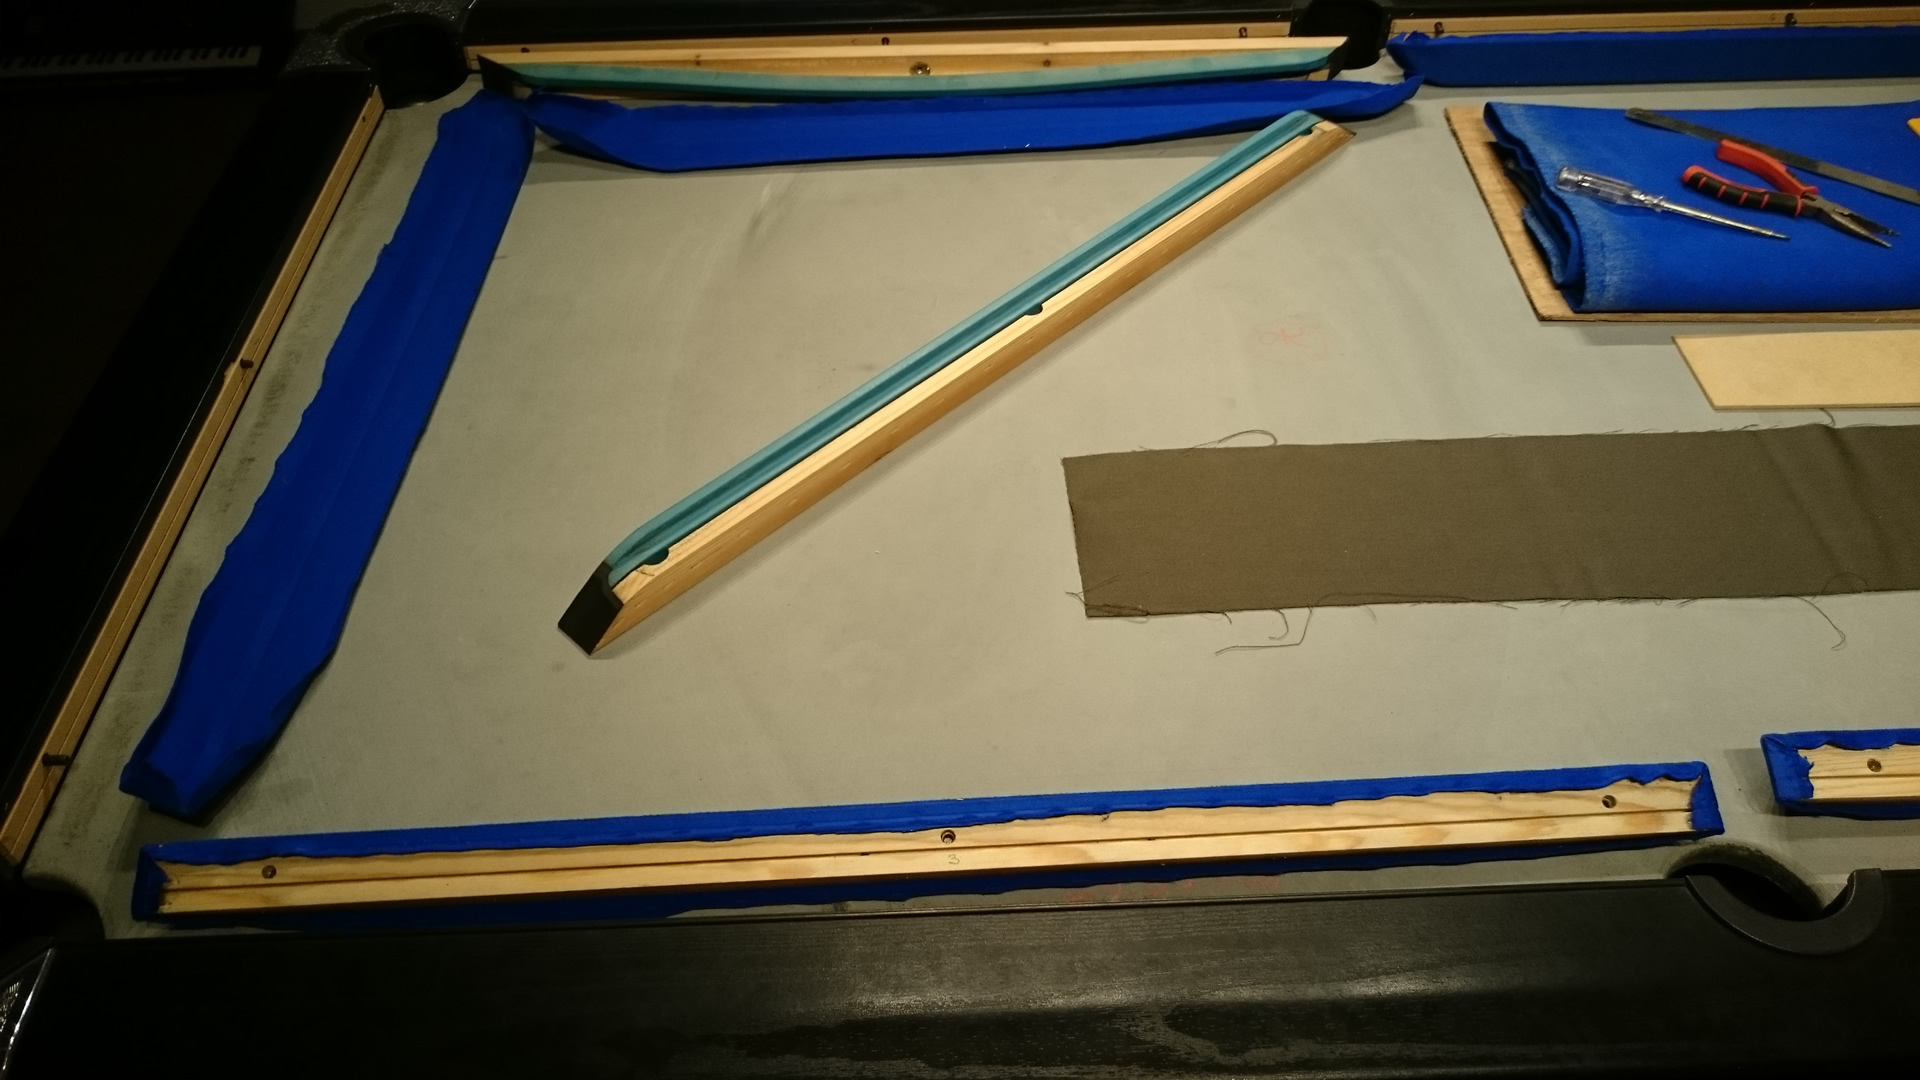 Pictorial History of a Pool Table Recover image 12